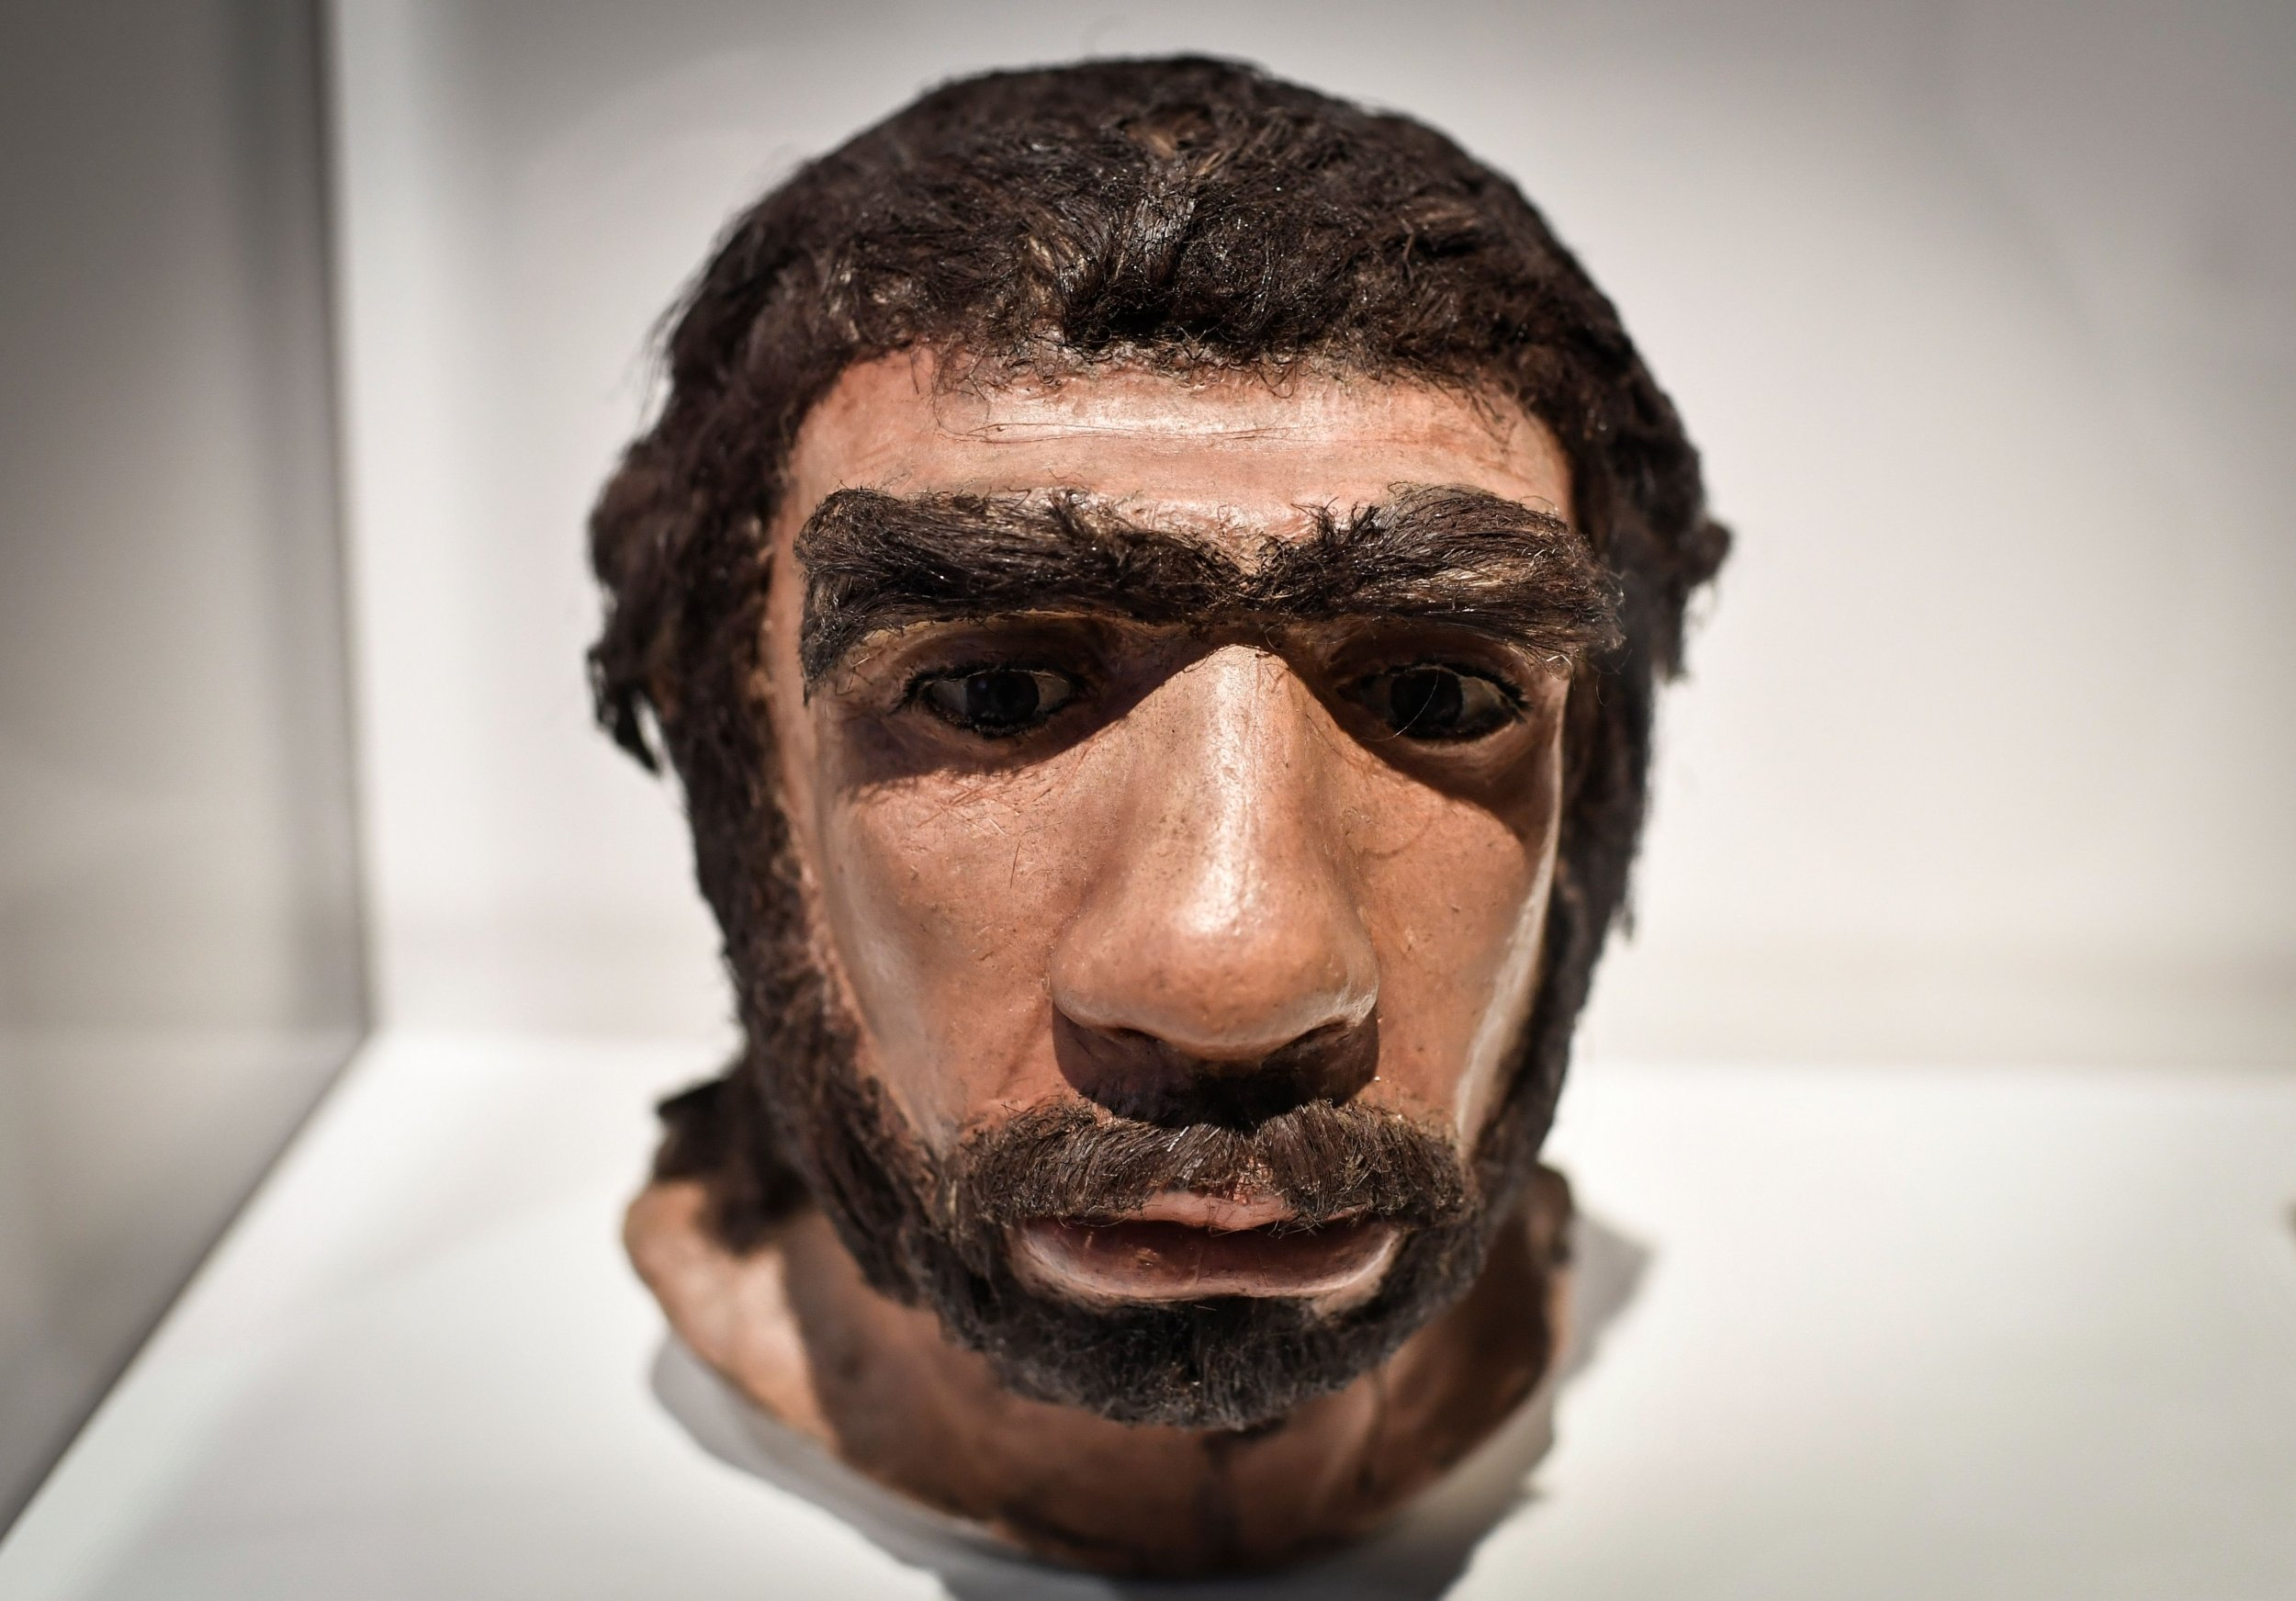 04_04_neanderthal_nose_breathing